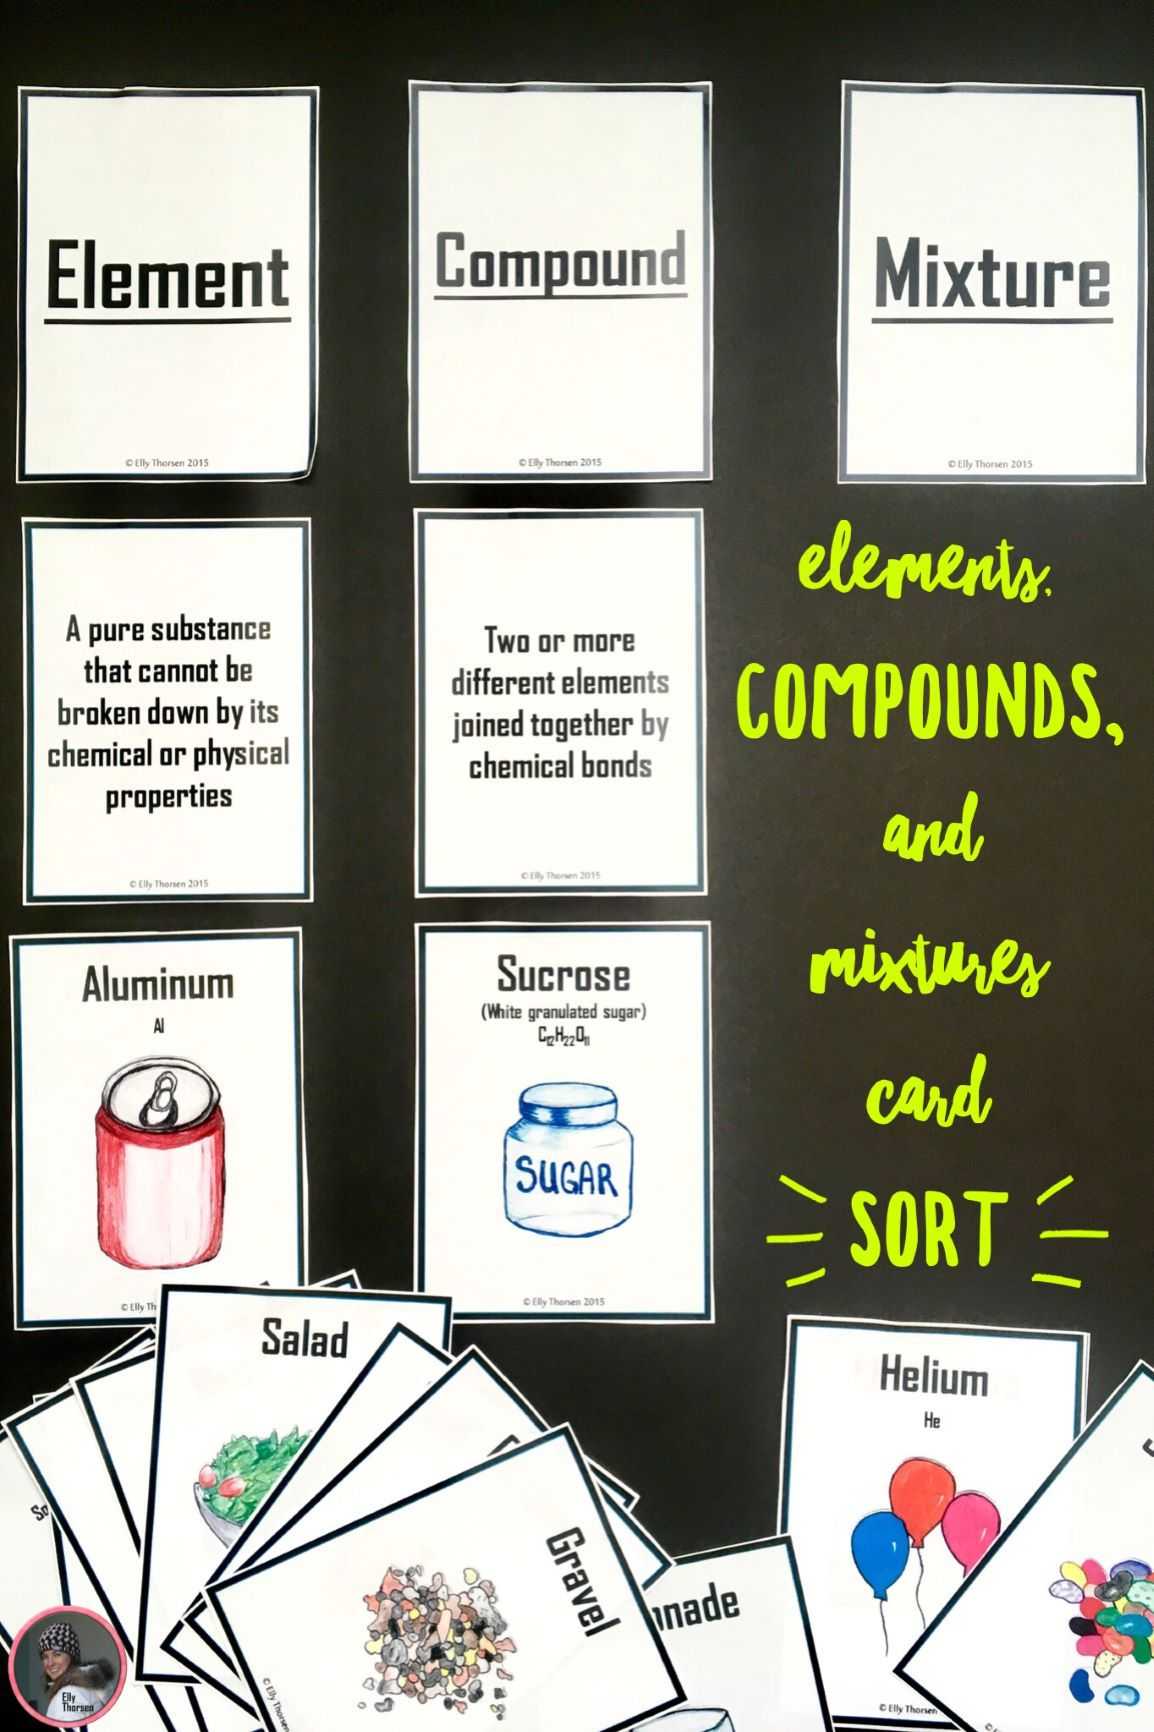 Elements Compounds And Mixtures Card Sorting Activity Science